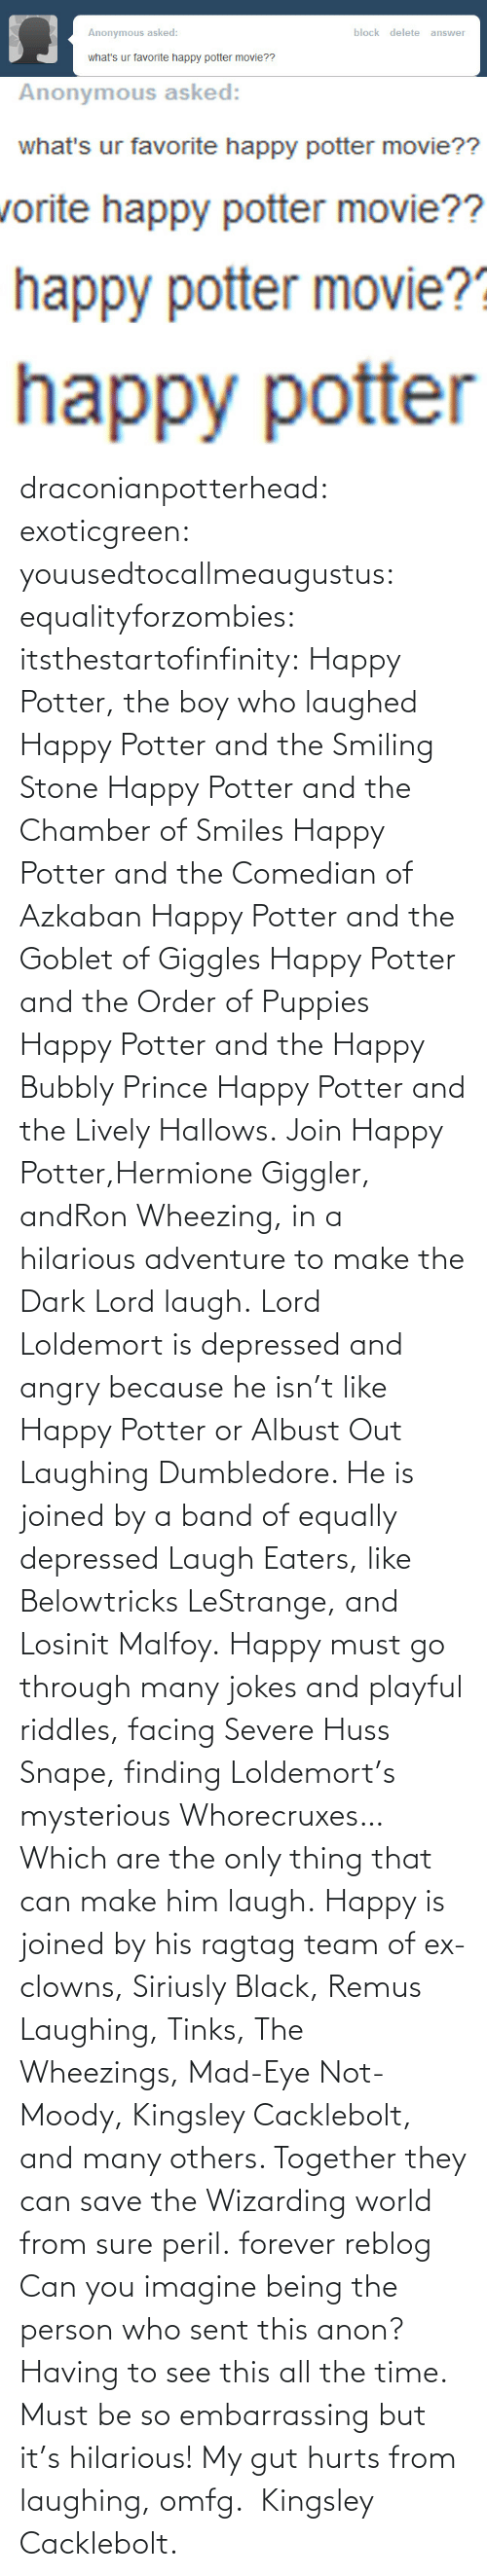 Jokes: Anonymous asked:  block delete answer  what's ur favorite happy potter movie??  Anonymous asked:  what's ur favorite happy potter movie??  orite happy potter movie??  happy potter movie?  happy potter draconianpotterhead:  exoticgreen:  youusedtocallmeaugustus:  equalityforzombies:  itsthestartofinfinity:  Happy Potter, the boy who laughed  Happy Potter and the Smiling Stone Happy Potter and the Chamber of Smiles Happy Potter and the Comedian of Azkaban Happy Potter and the Goblet of Giggles Happy Potter and the Order of Puppies Happy Potter and the Happy Bubbly Prince Happy Potter and the Lively Hallows. Join Happy Potter,Hermione Giggler, andRon Wheezing, in a hilarious adventure to make the Dark Lord laugh. Lord Loldemort is depressed and angry because he isn't like Happy Potter or Albust Out Laughing Dumbledore. He is joined by a band of equally depressed Laugh Eaters, like Belowtricks LeStrange, and Losinit Malfoy. Happy must go through many jokes and playful riddles, facing Severe Huss Snape, finding Loldemort's mysterious Whorecruxes… Which are the only thing that can make him laugh. Happy is joined by his ragtag team of ex-clowns, Siriusly Black, Remus Laughing, Tinks, The Wheezings, Mad-Eye Not-Moody, Kingsley Cacklebolt, and many others. Together they can save the Wizarding world from sure peril.   forever reblog  Can you imagine being the person who sent this anon? Having to see this all the time. Must be so embarrassing but it's hilarious!  My gut hurts from laughing, omfg.  Kingsley Cacklebolt.